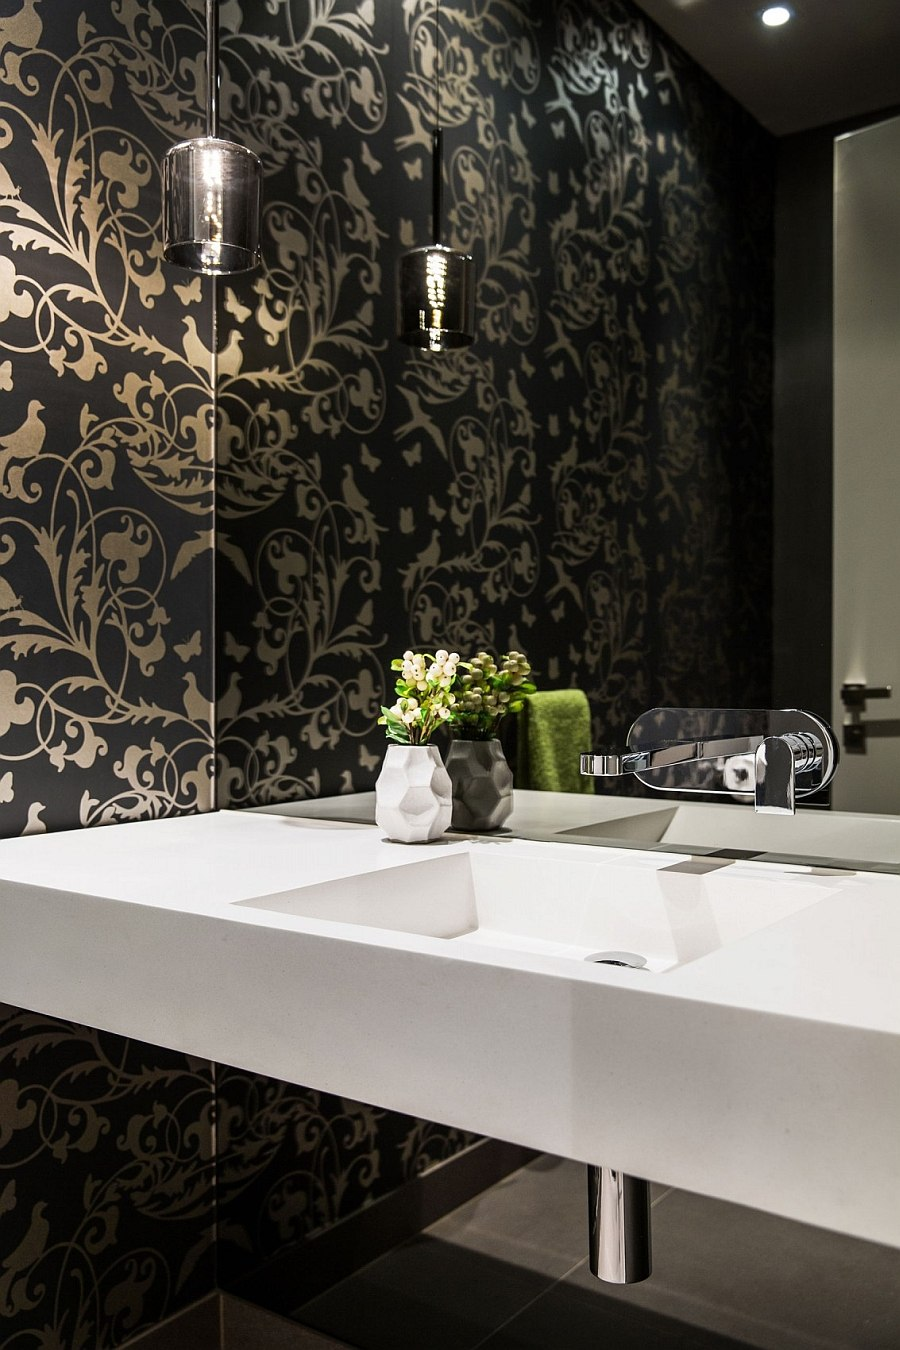 Wallpaper brings an air of luxury to the powder room